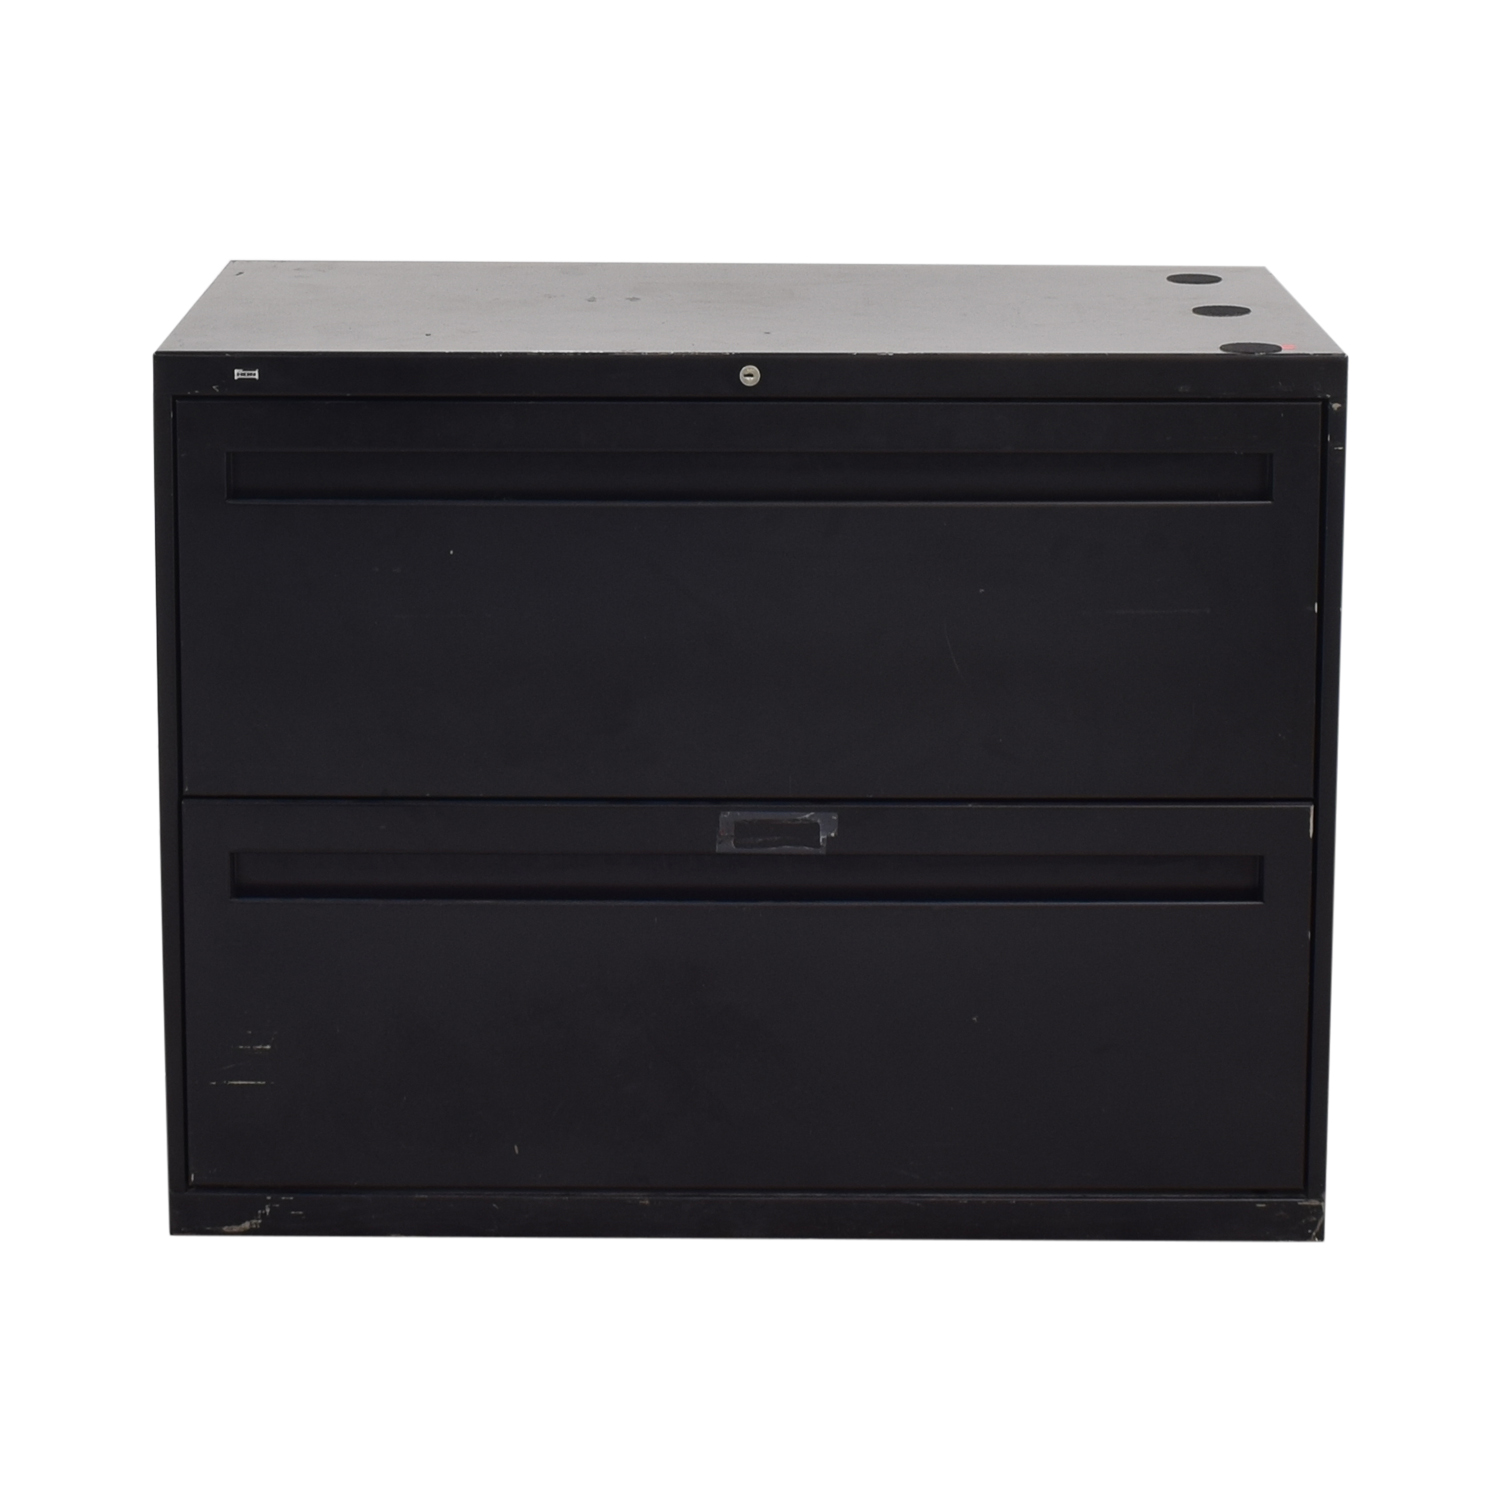 Hon HON 2-Drawer Lateral File Cabinet second hand